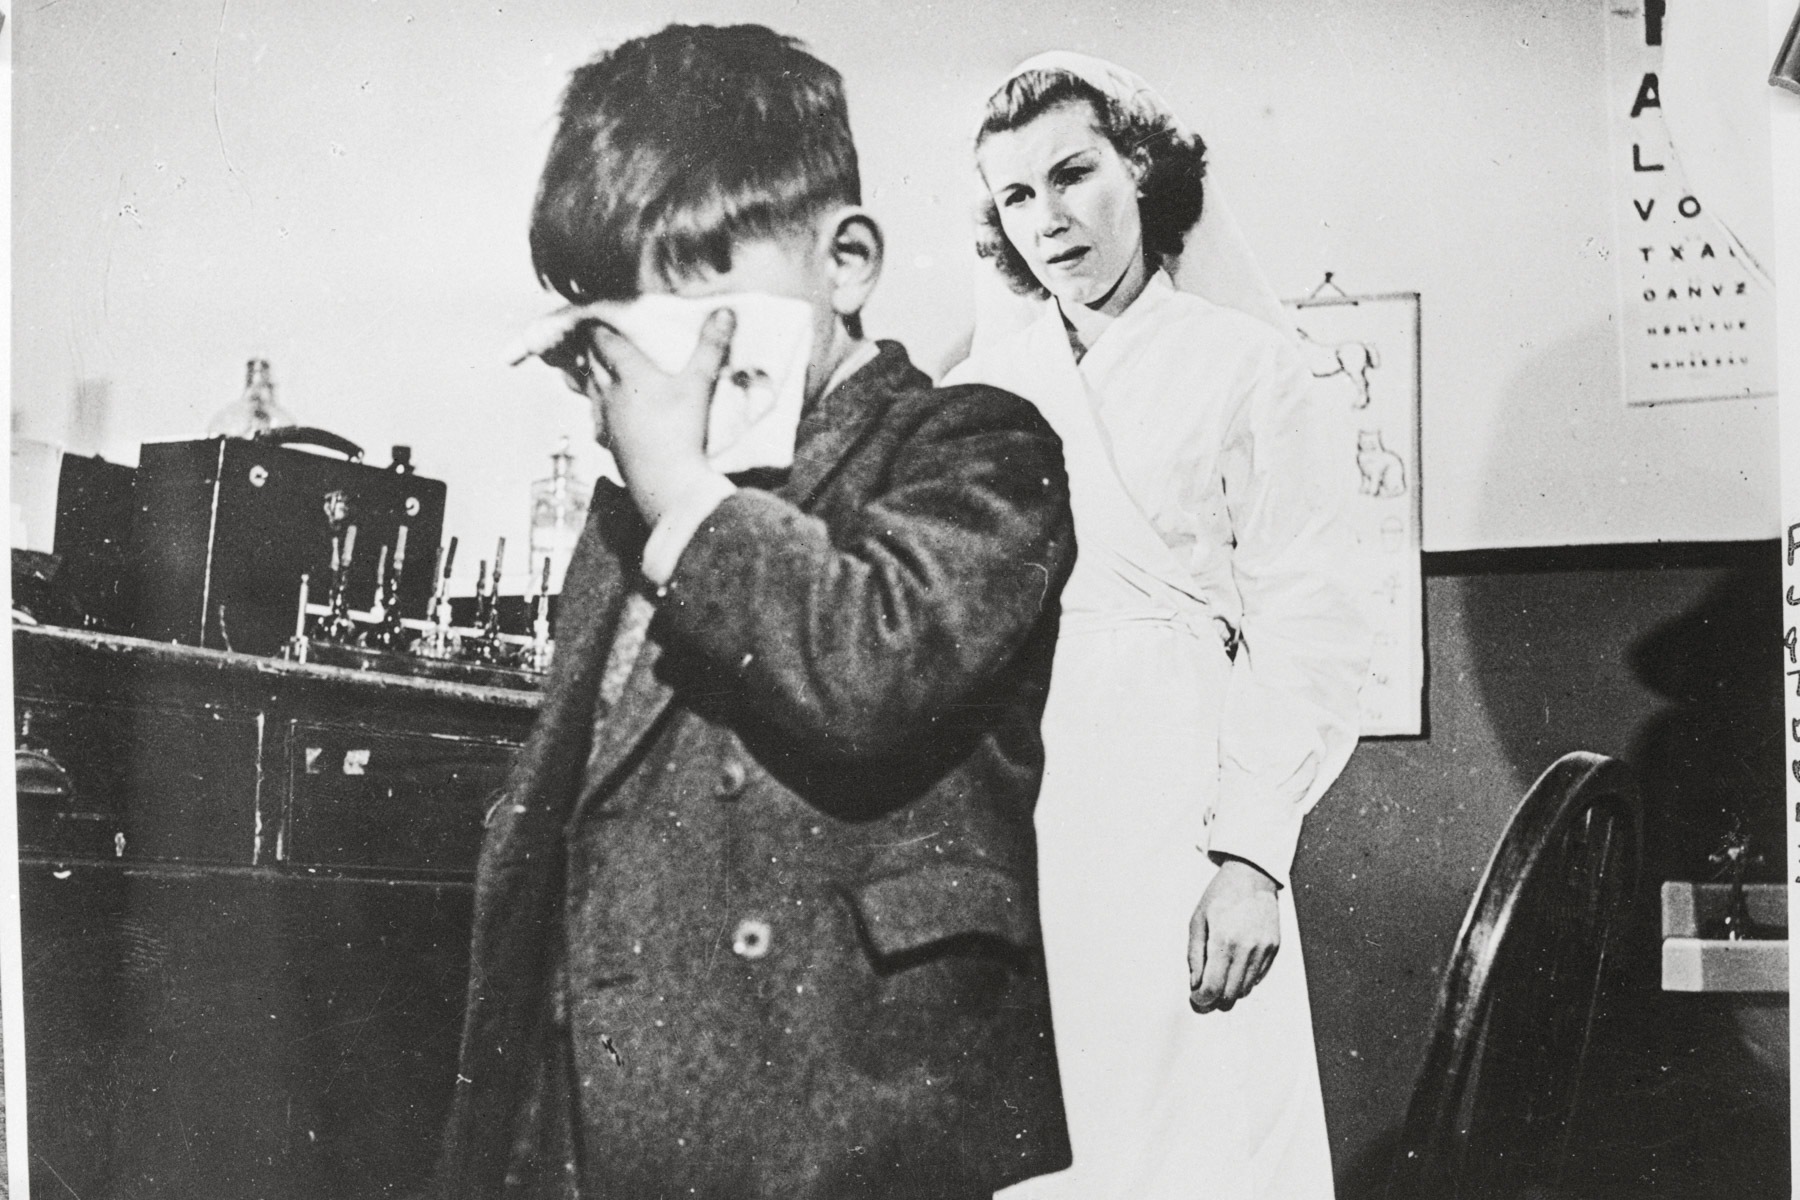 1943: A scene from a film released by the British Ministry of Information as part of a campaign against venereal disease. It depicts the son of an infected parent in danger of becoming blind through inherited syphilis. (Photograph by Getty Bettmann Archive)